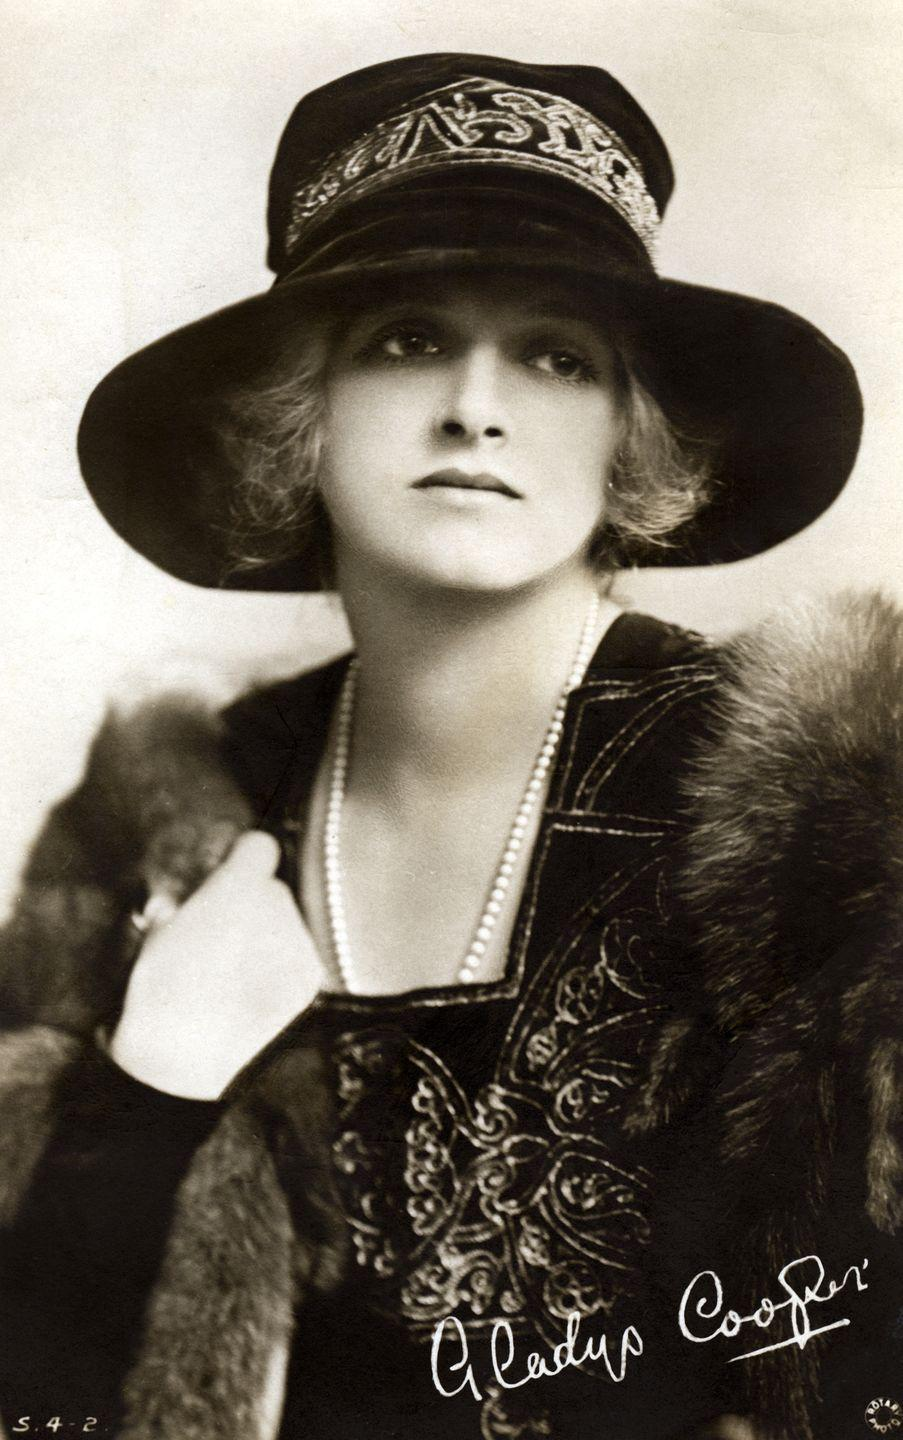 <p>Gladys Cooper was quintessentially British in the way she dressed: plenty of practicality balanced with intricate details and luxurious touches. Here, she wears her signature string of pearls with a fur stole and a wide-brimmed hat for a unique yet stylish ensemble.</p>